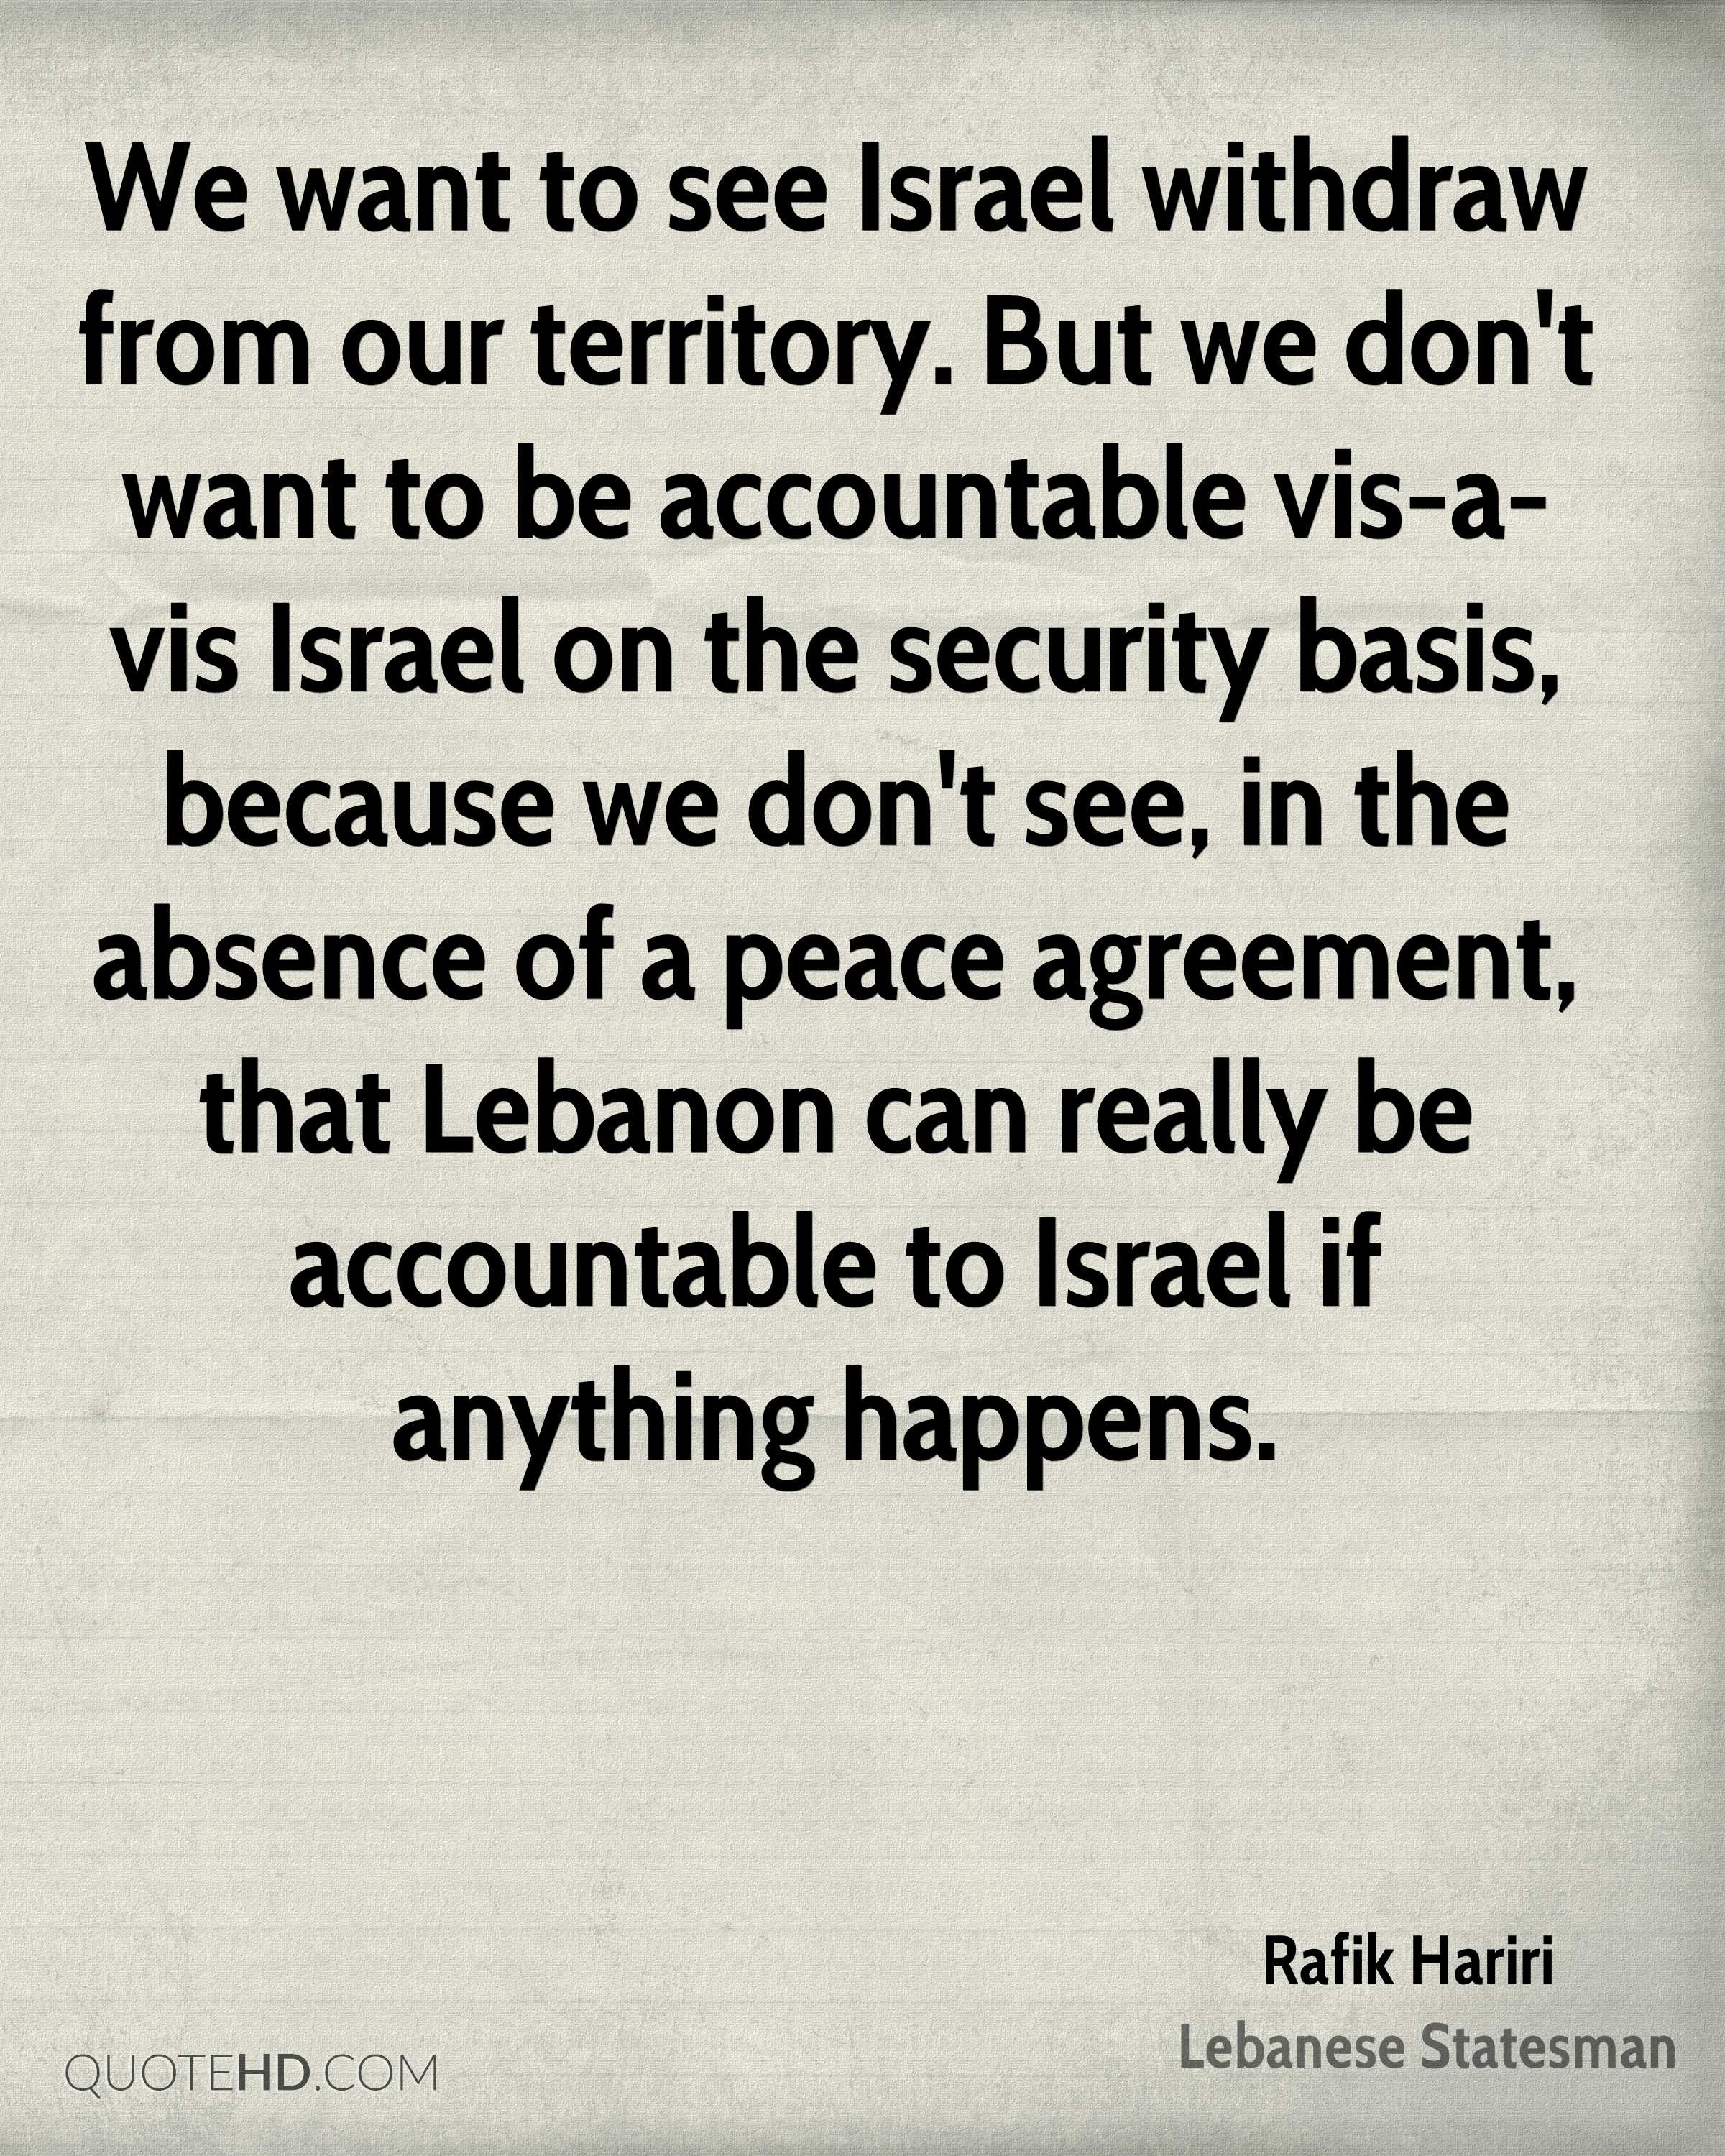 We want to see Israel withdraw from our territory. But we don't want to be accountable vis-a-vis Israel on the security basis, because we don't see, in the absence of a peace agreement, that Lebanon can really be accountable to Israel if anything happens.